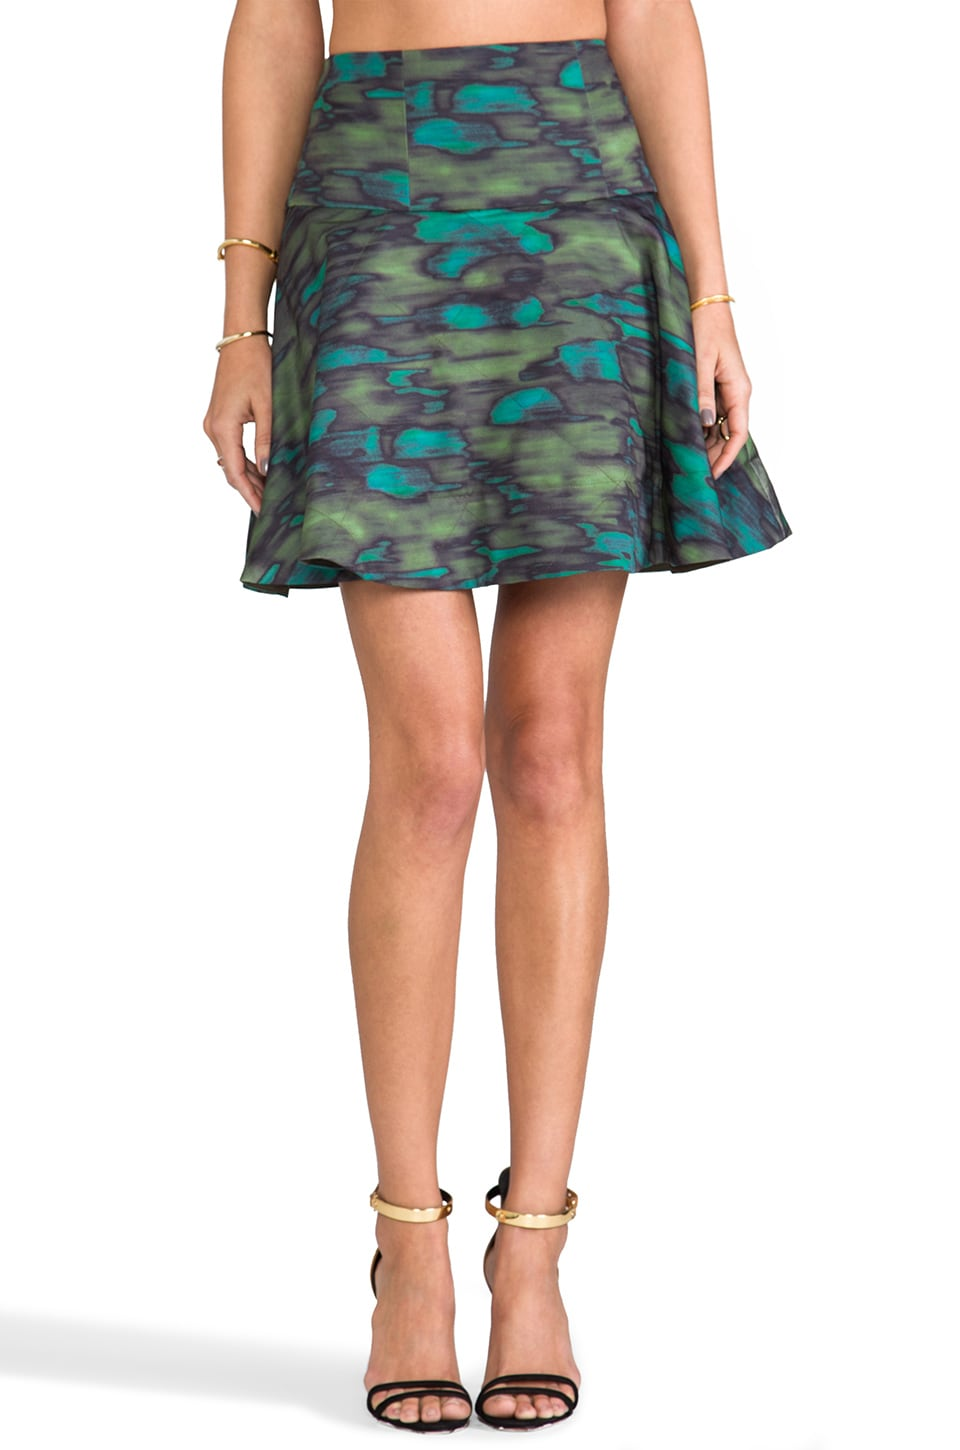 Nanette Lepore RUNWAY Outerspace Print Skirt in Olive